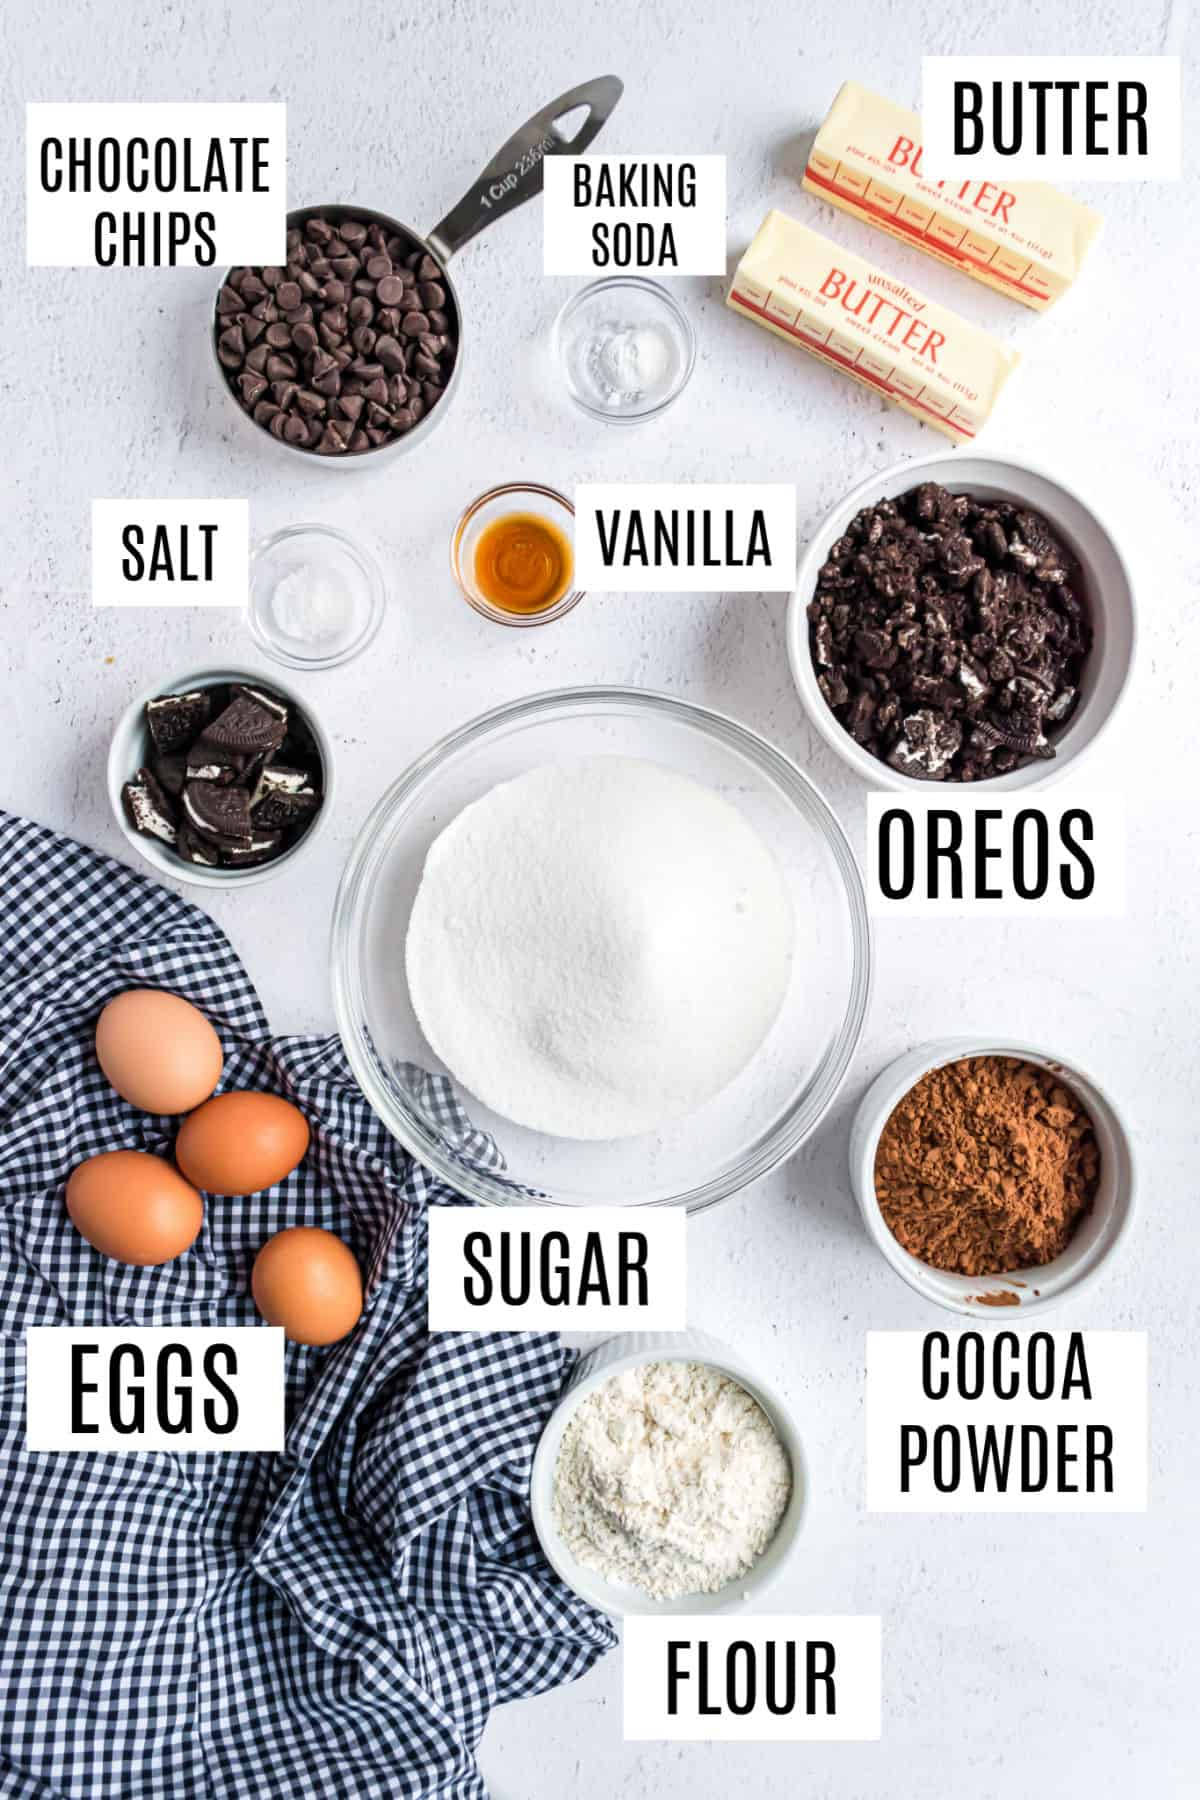 Necessary ingredients for making Oreo brownies.